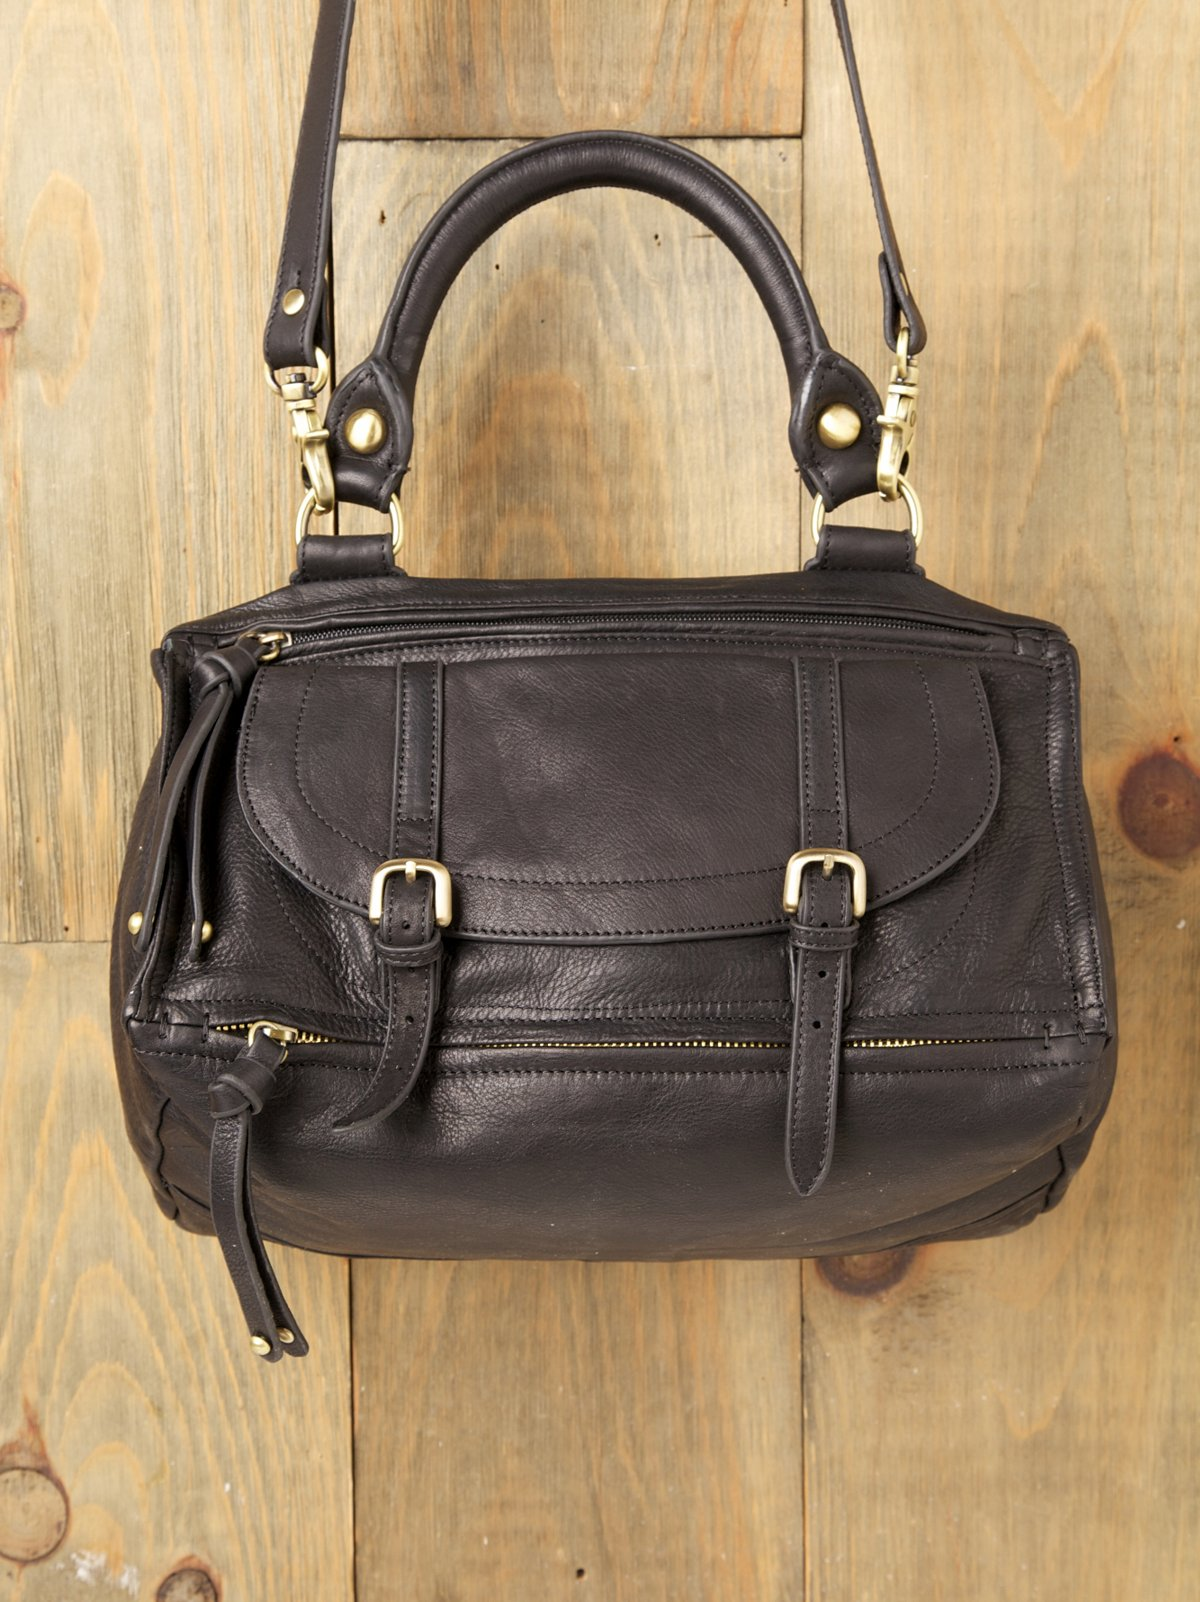 Raven Leather Bag